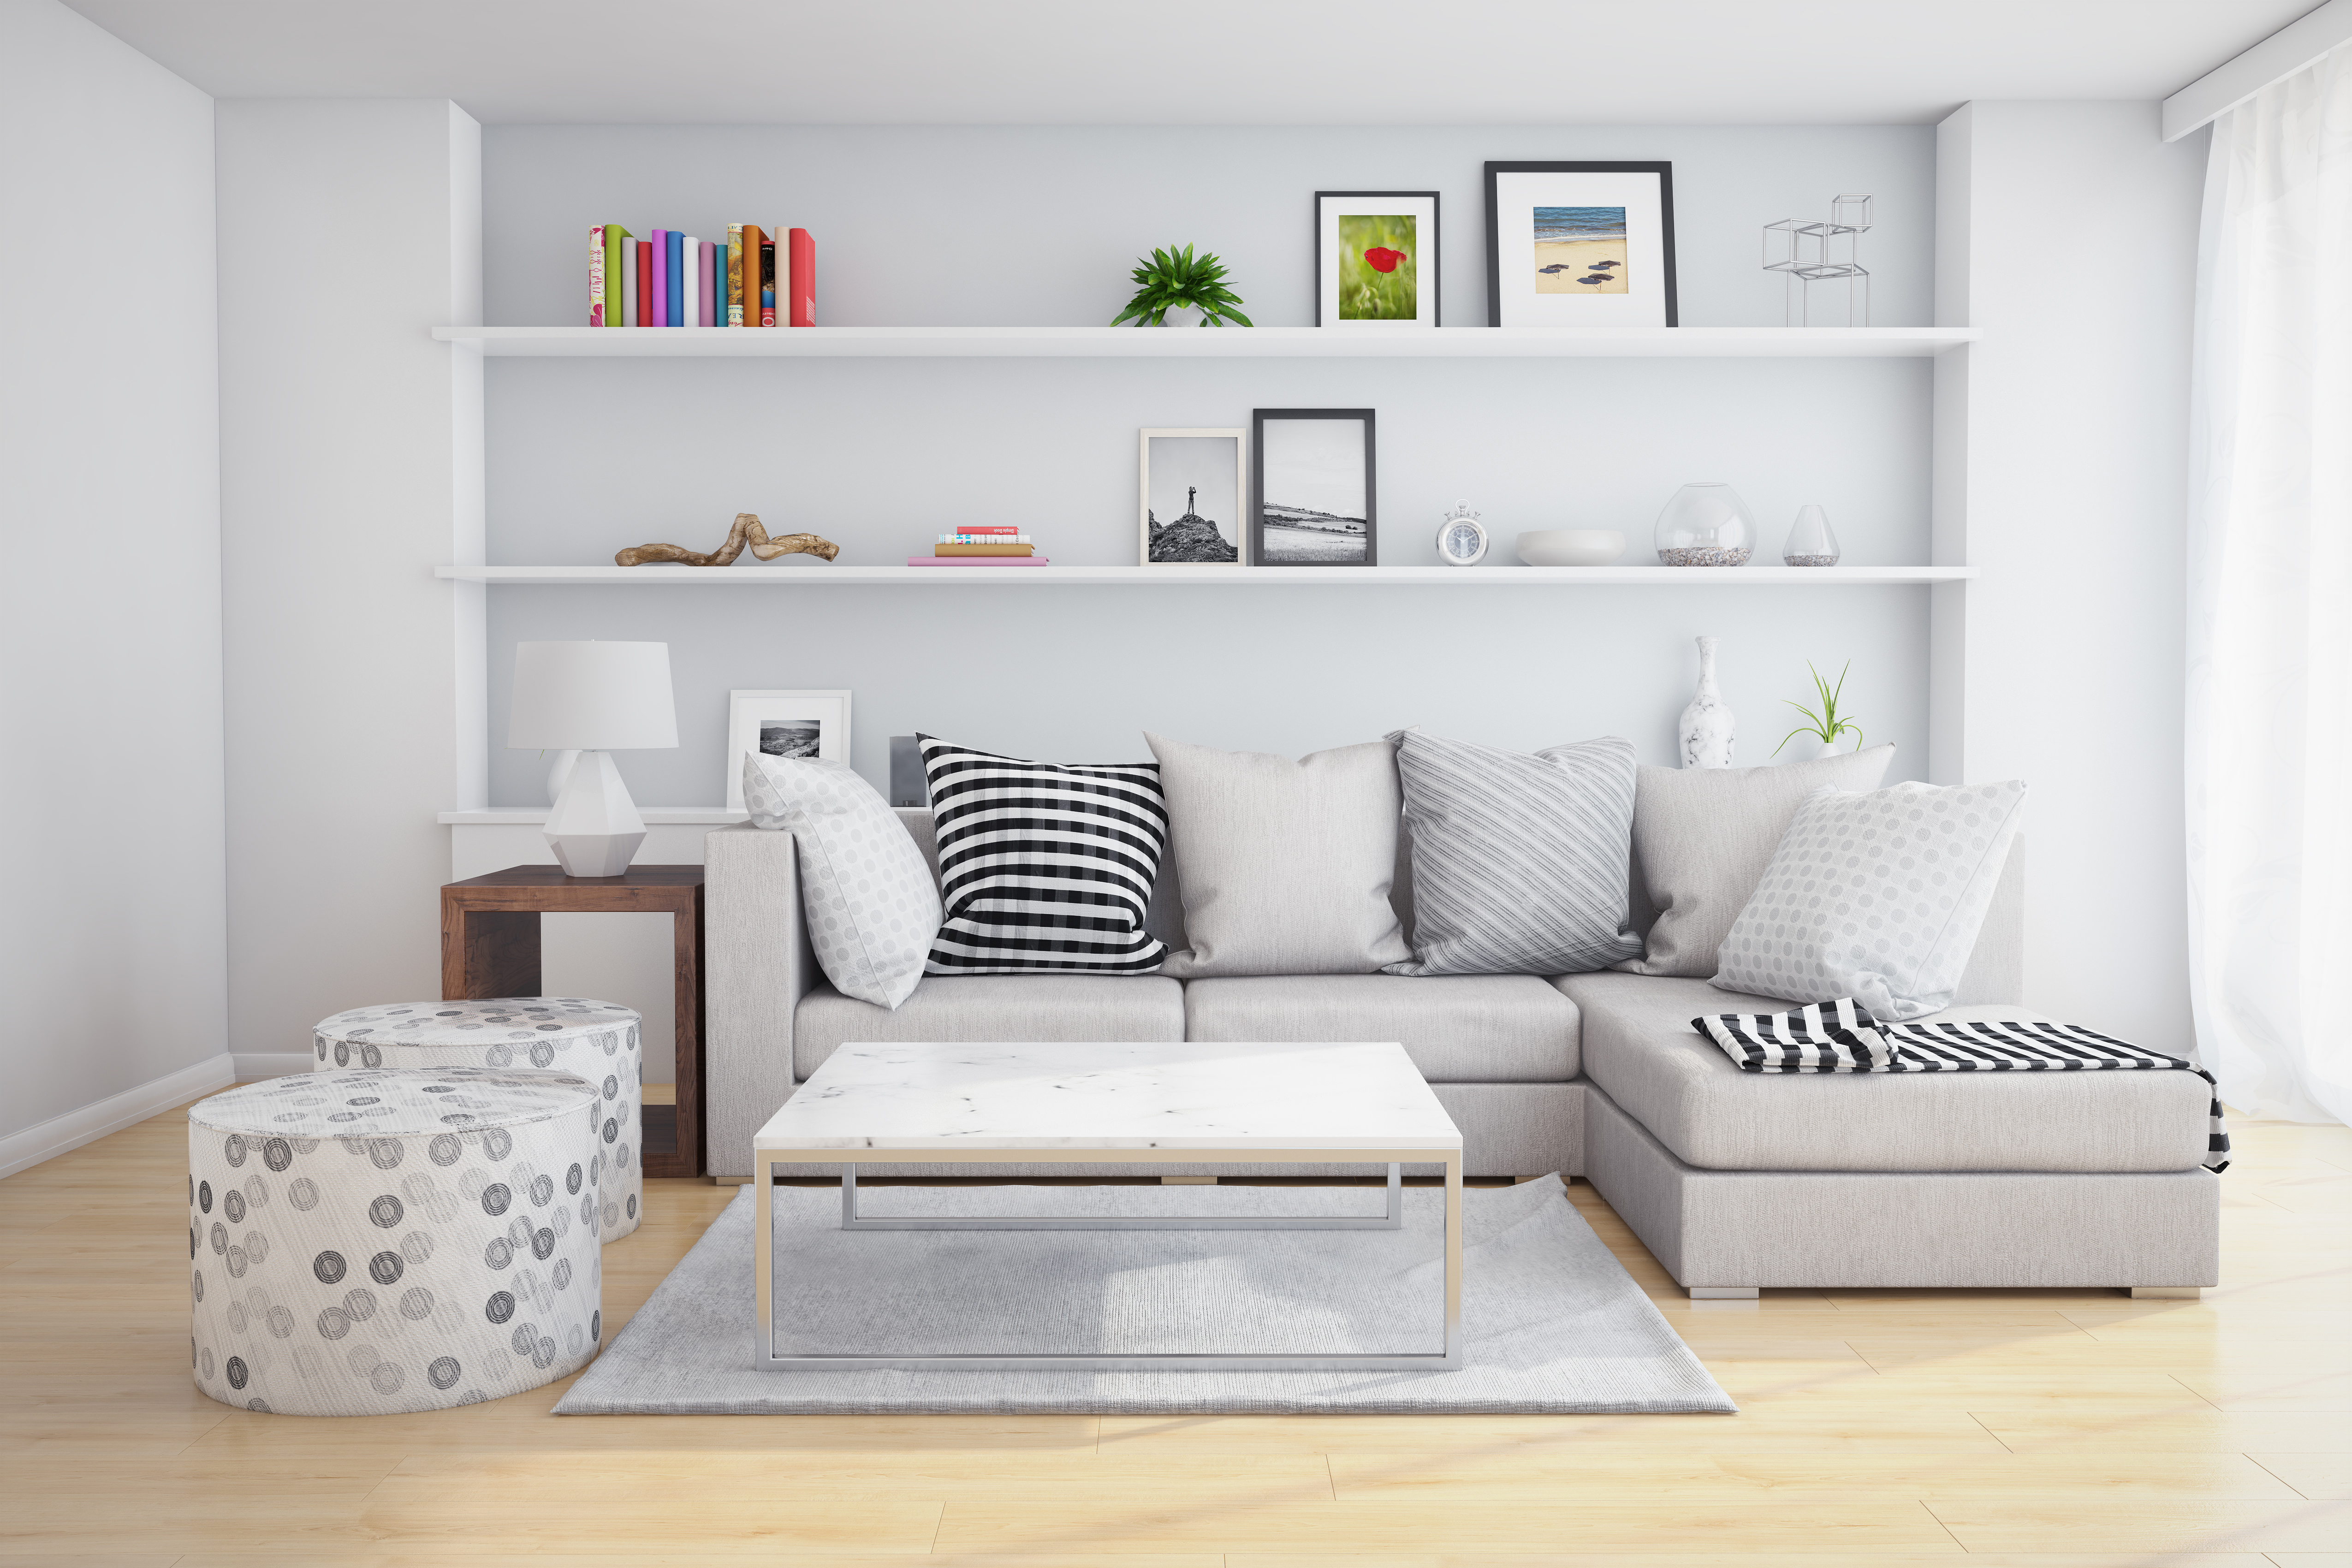 5 of the most common interior design mistakes to avoid